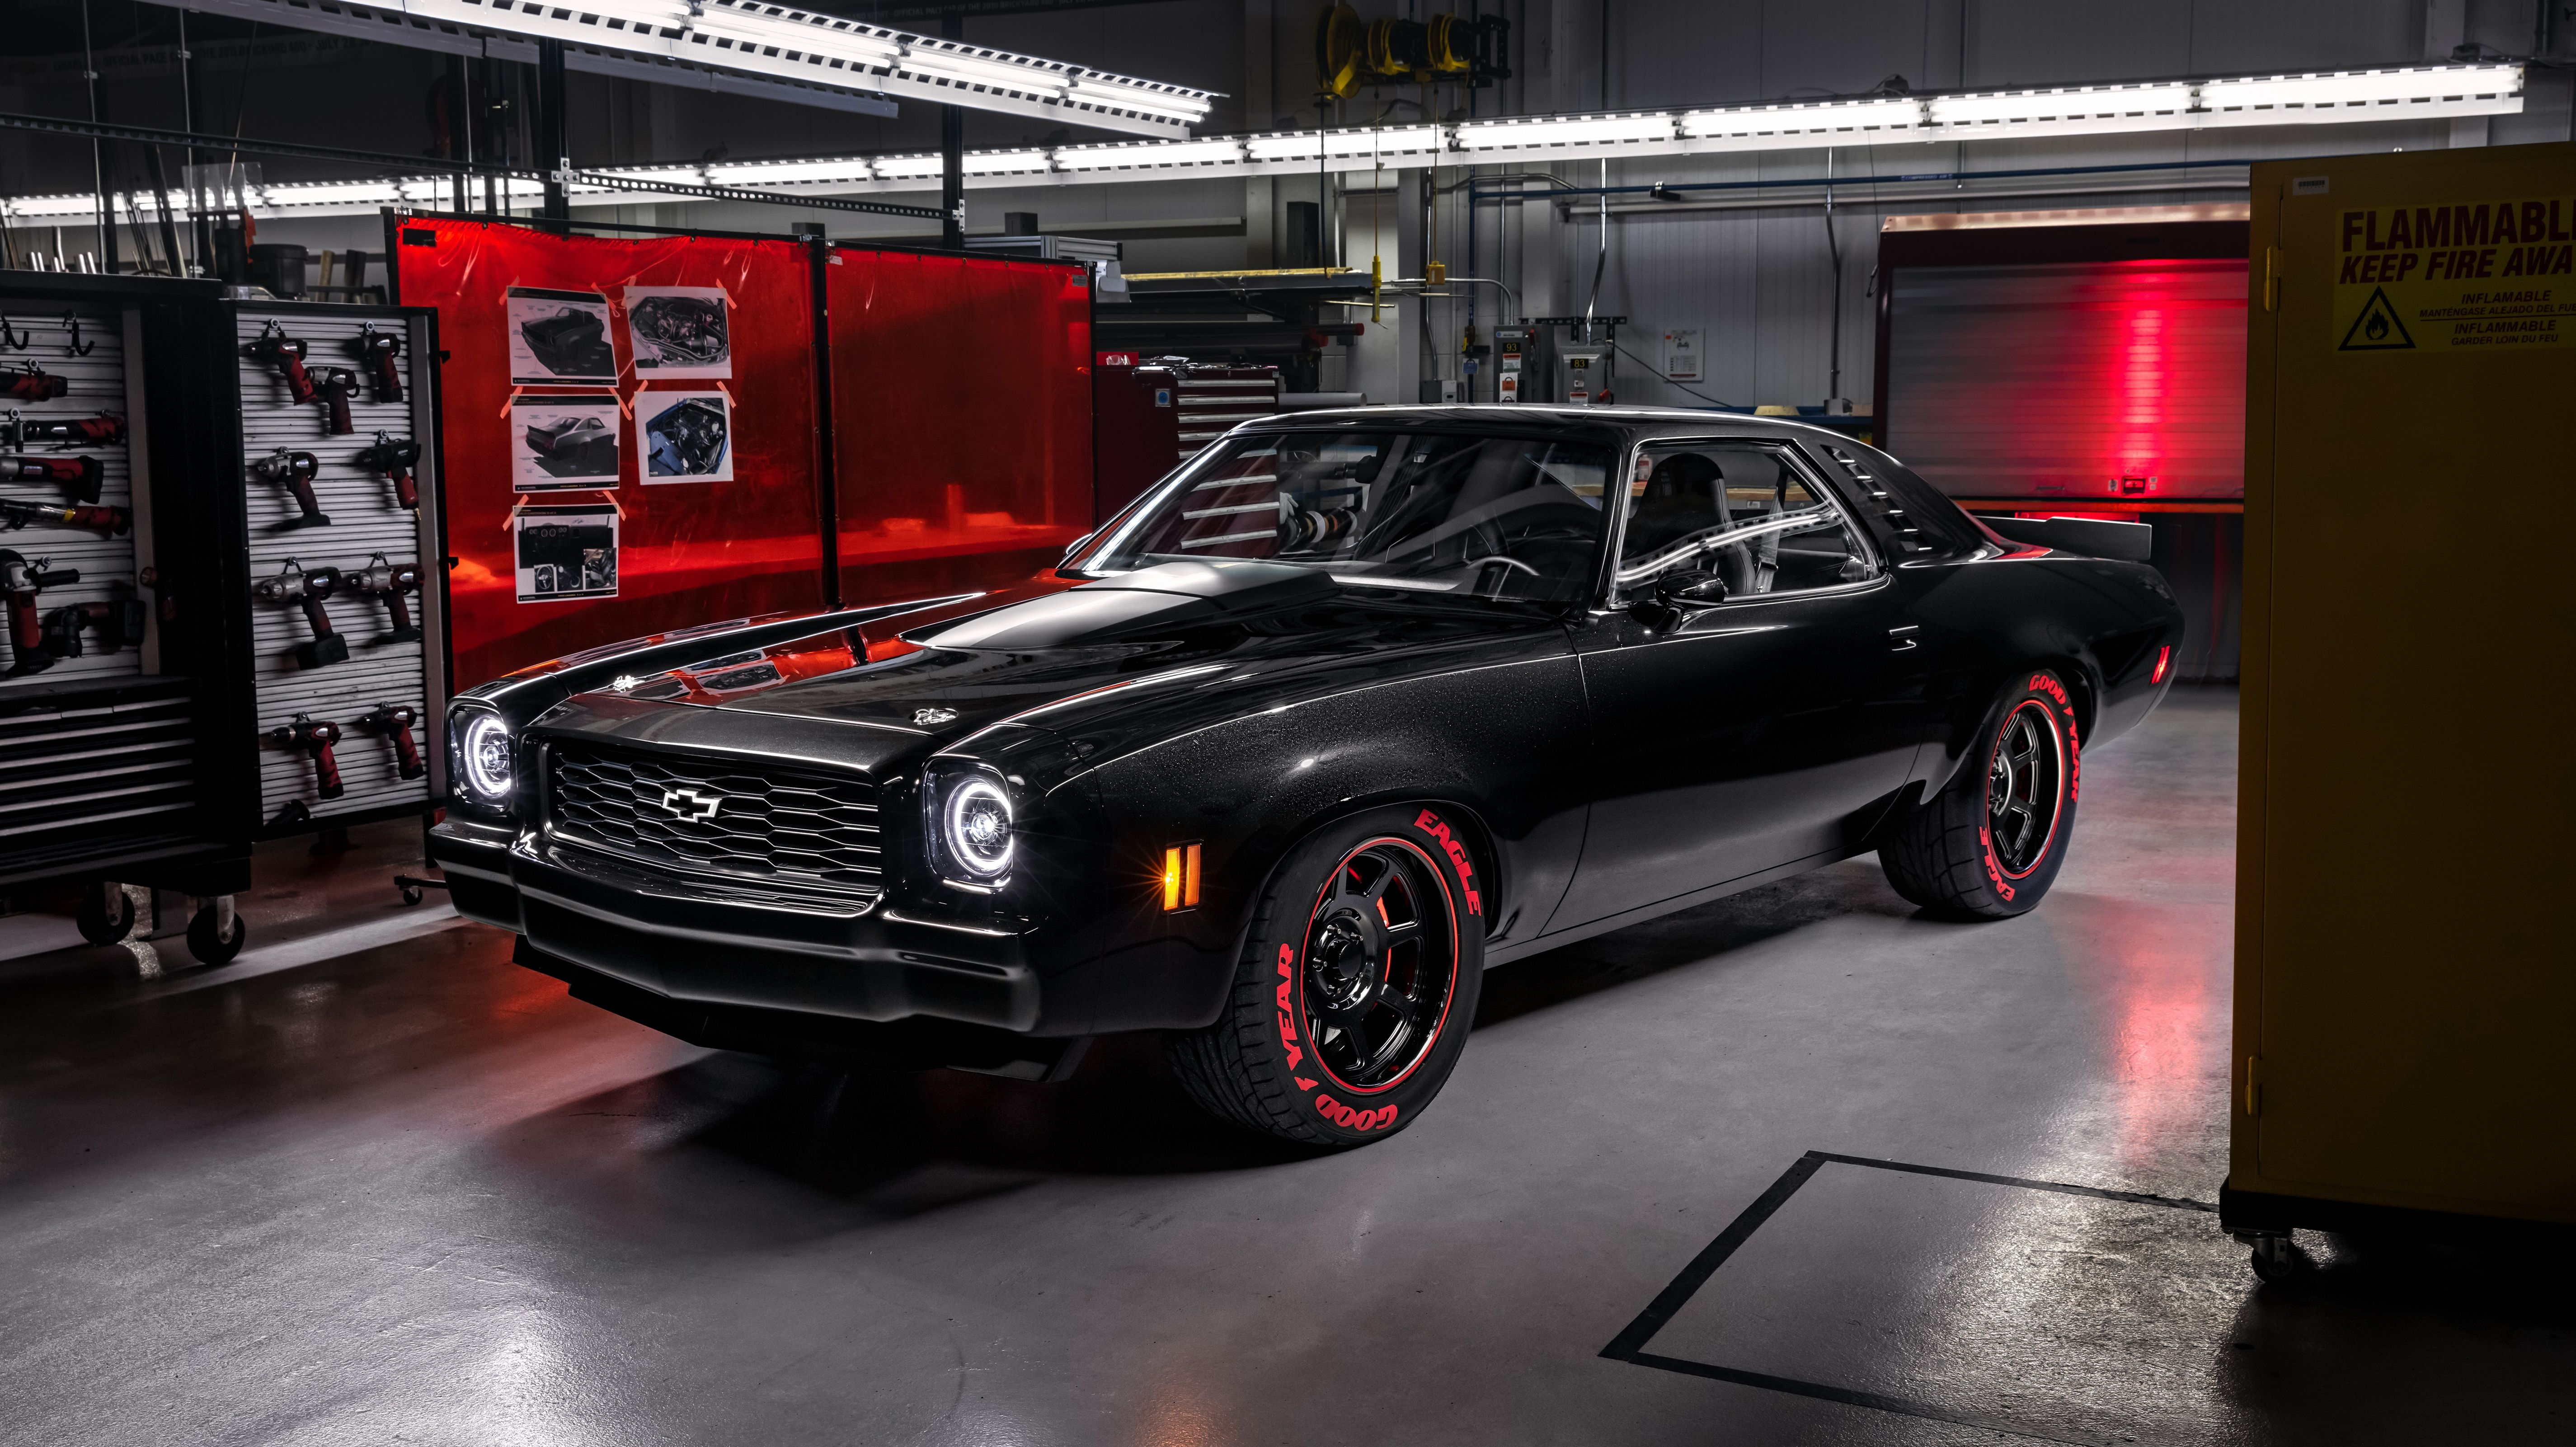 Chevrolet Is Showing Its Newest Crate Engines In Three Vintage Concepts Chevrolet Chevelle Chevrolet Wallpaper Chevelle